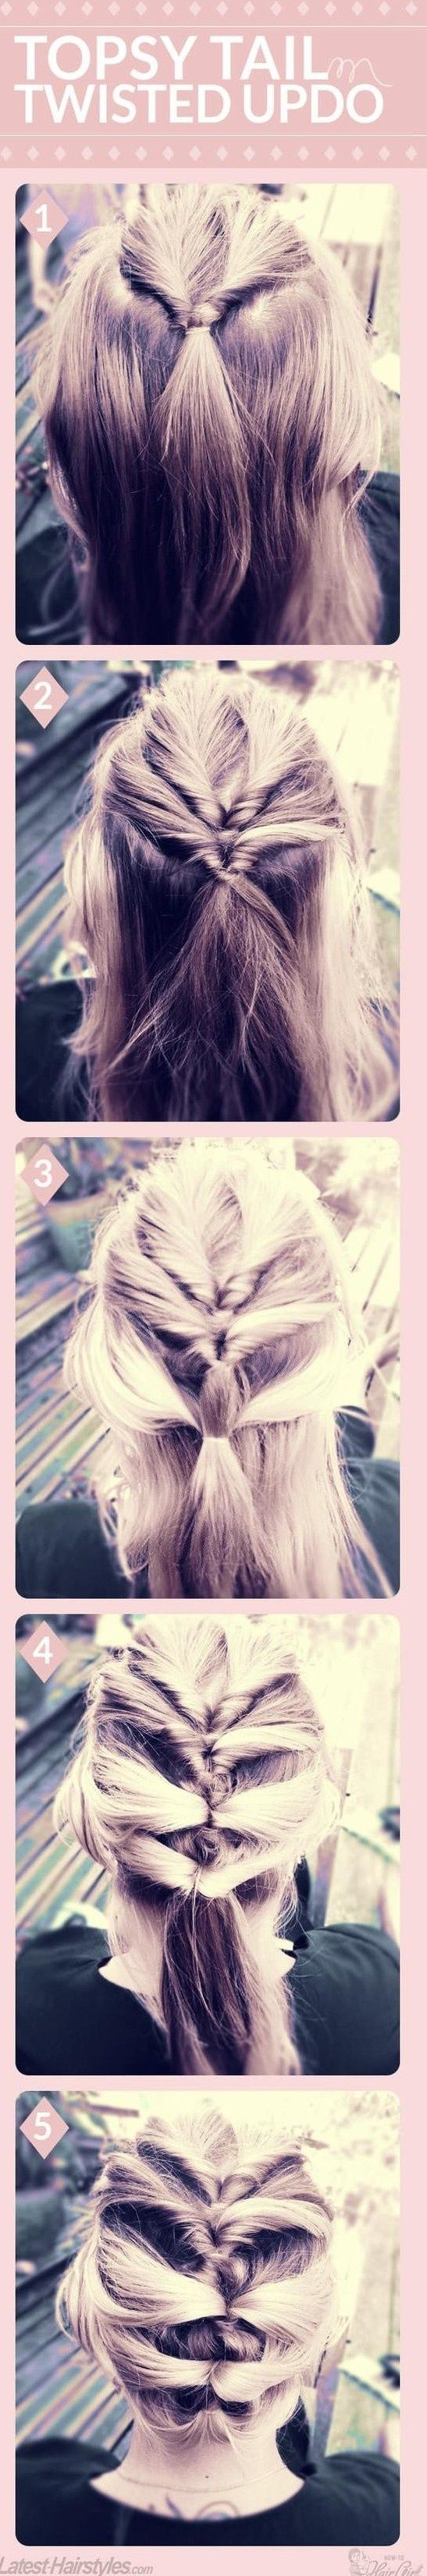 Short on time but wanting to craft a cute hairstyle? While you may not always have time for a gorgeous blowout or fancy updo, there are many different ways you can style your hair that take 10 minutes or less. Check out five more easy tutorials we scouted just for you! Missed our first roundup? Head here! PERFECT PONY FISHTAIL MERMAID BRAID NEW WEAVE TOPSY TAIL TWISTED UPDO BEACH WAVES (click for instructions) Which is your favorite style, girls? Do you ever use online DIY tutorials to do…